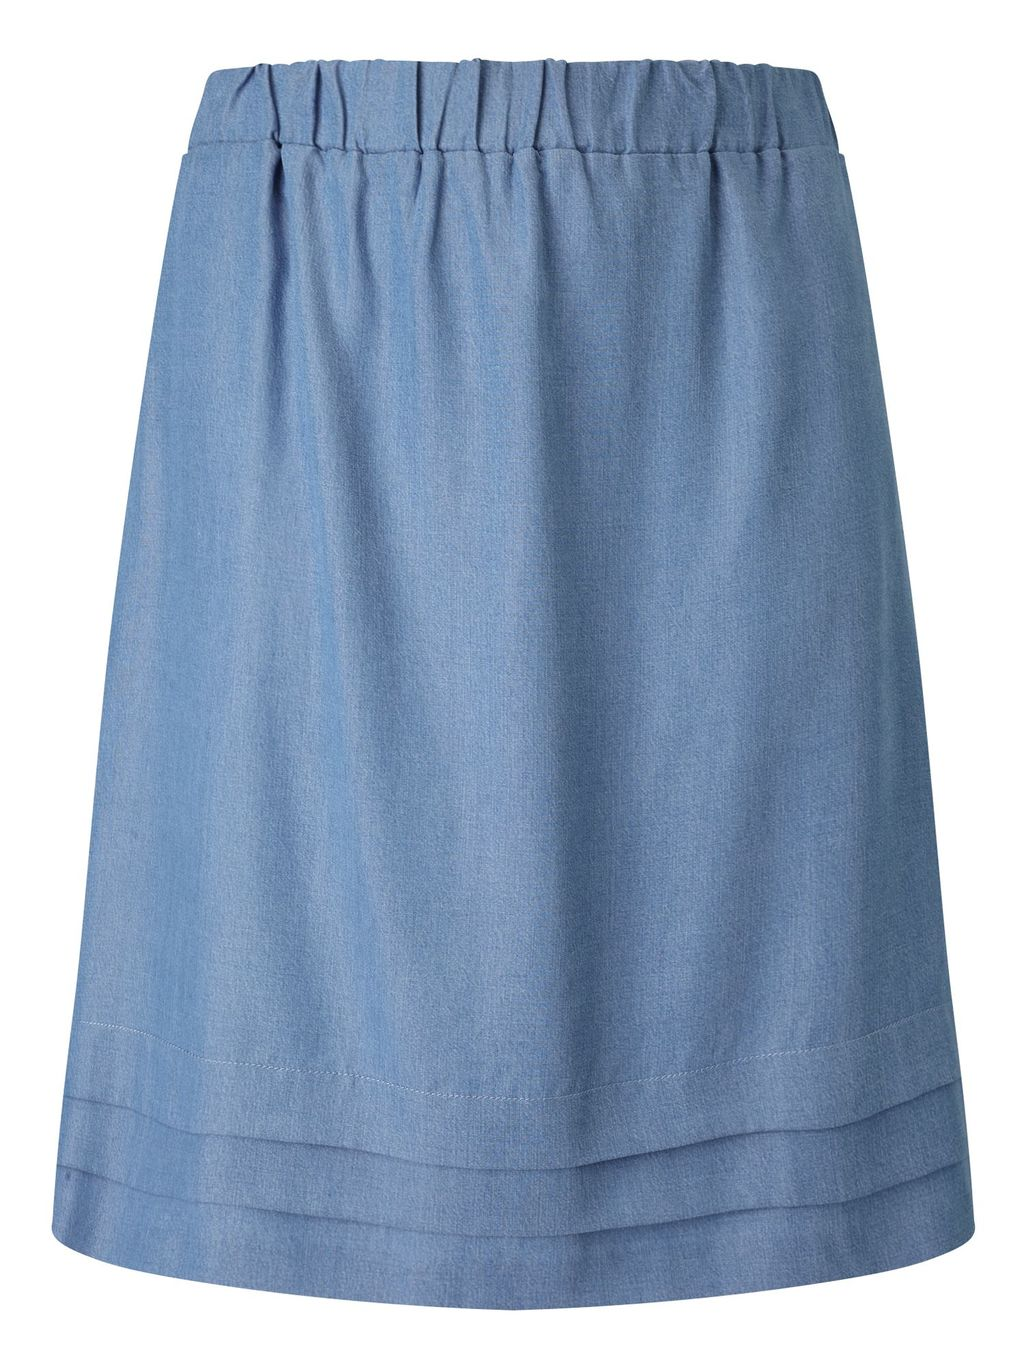 Tina Skirt, Blue - pattern: plain; style: full/prom skirt; fit: loose/voluminous; waist: mid/regular rise; predominant colour: denim; occasions: casual, creative work; length: on the knee; fibres: cotton - 100%; texture group: denim; pattern type: fabric; season: s/s 2016